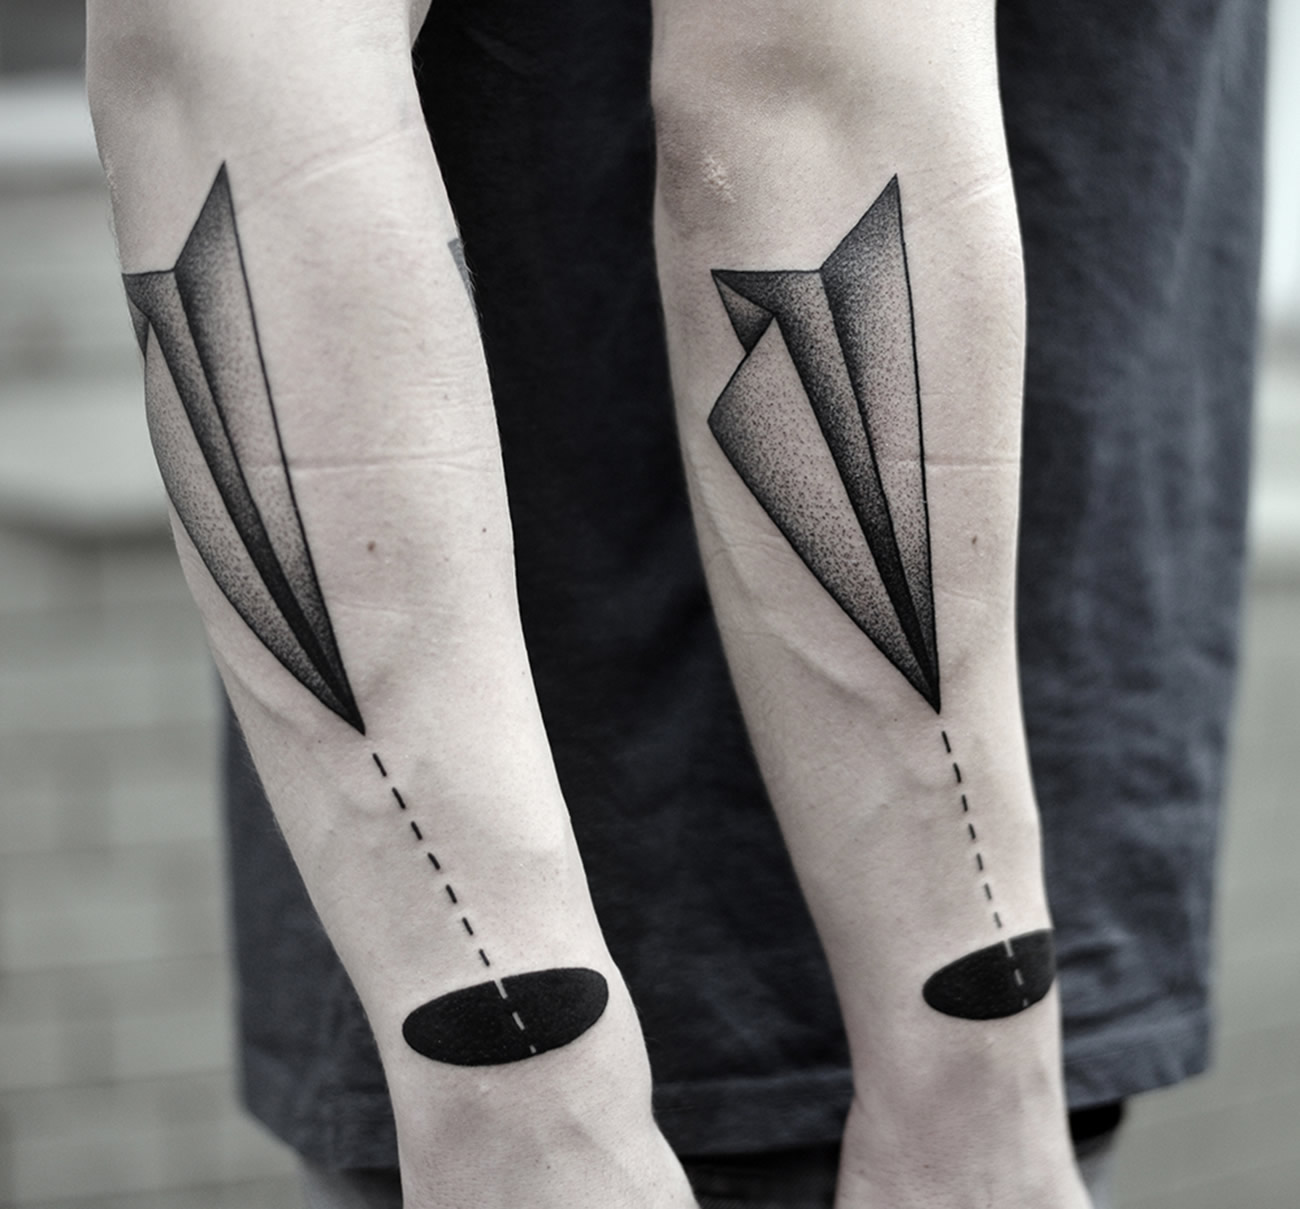 paper plane flying into black hole, tattoo by Kamil Czapiga